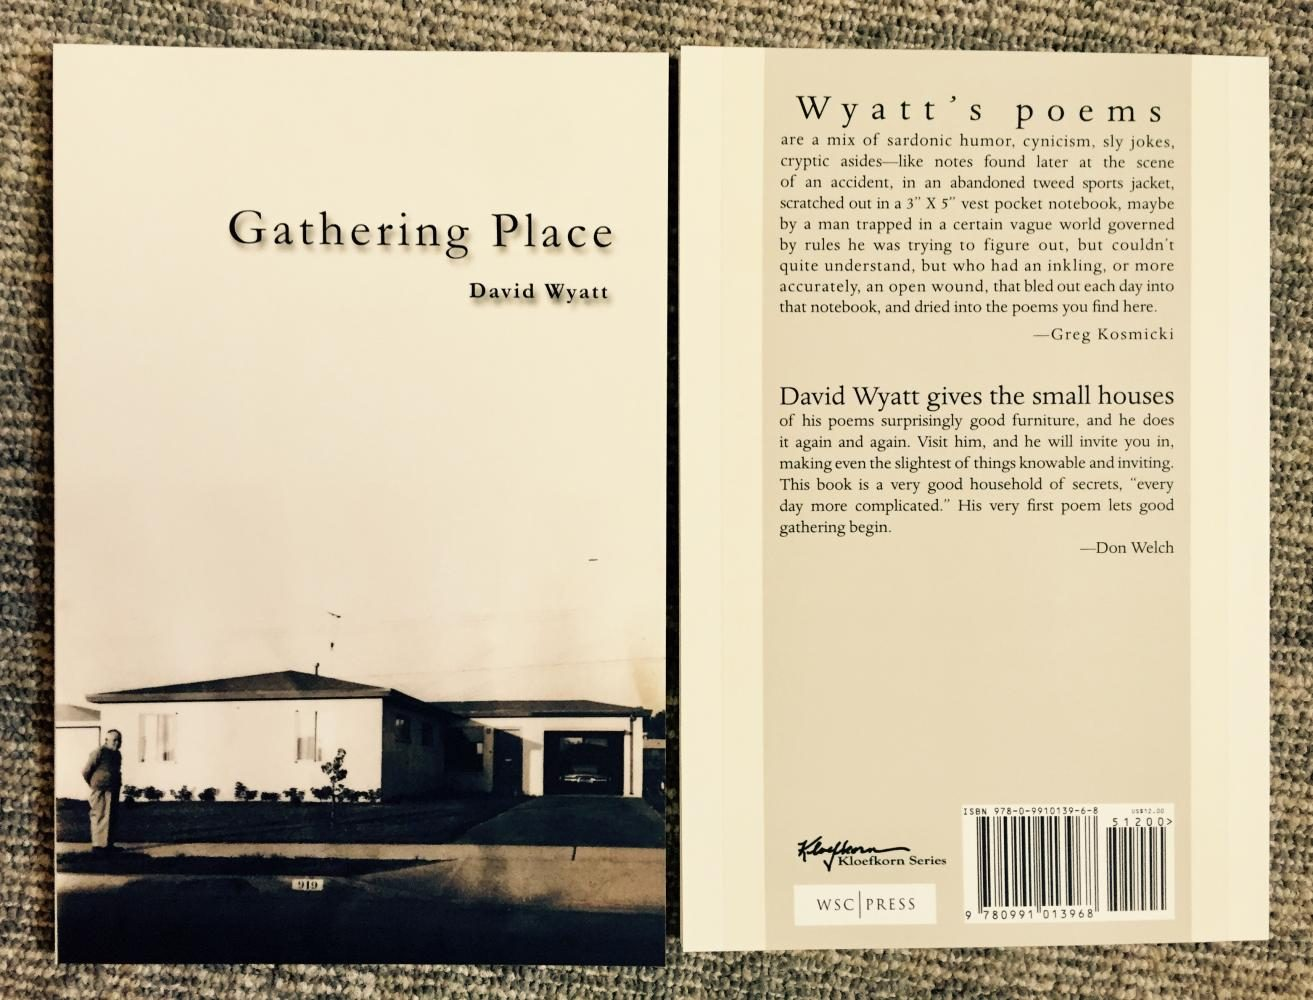 Gathering Place by David Wyatt